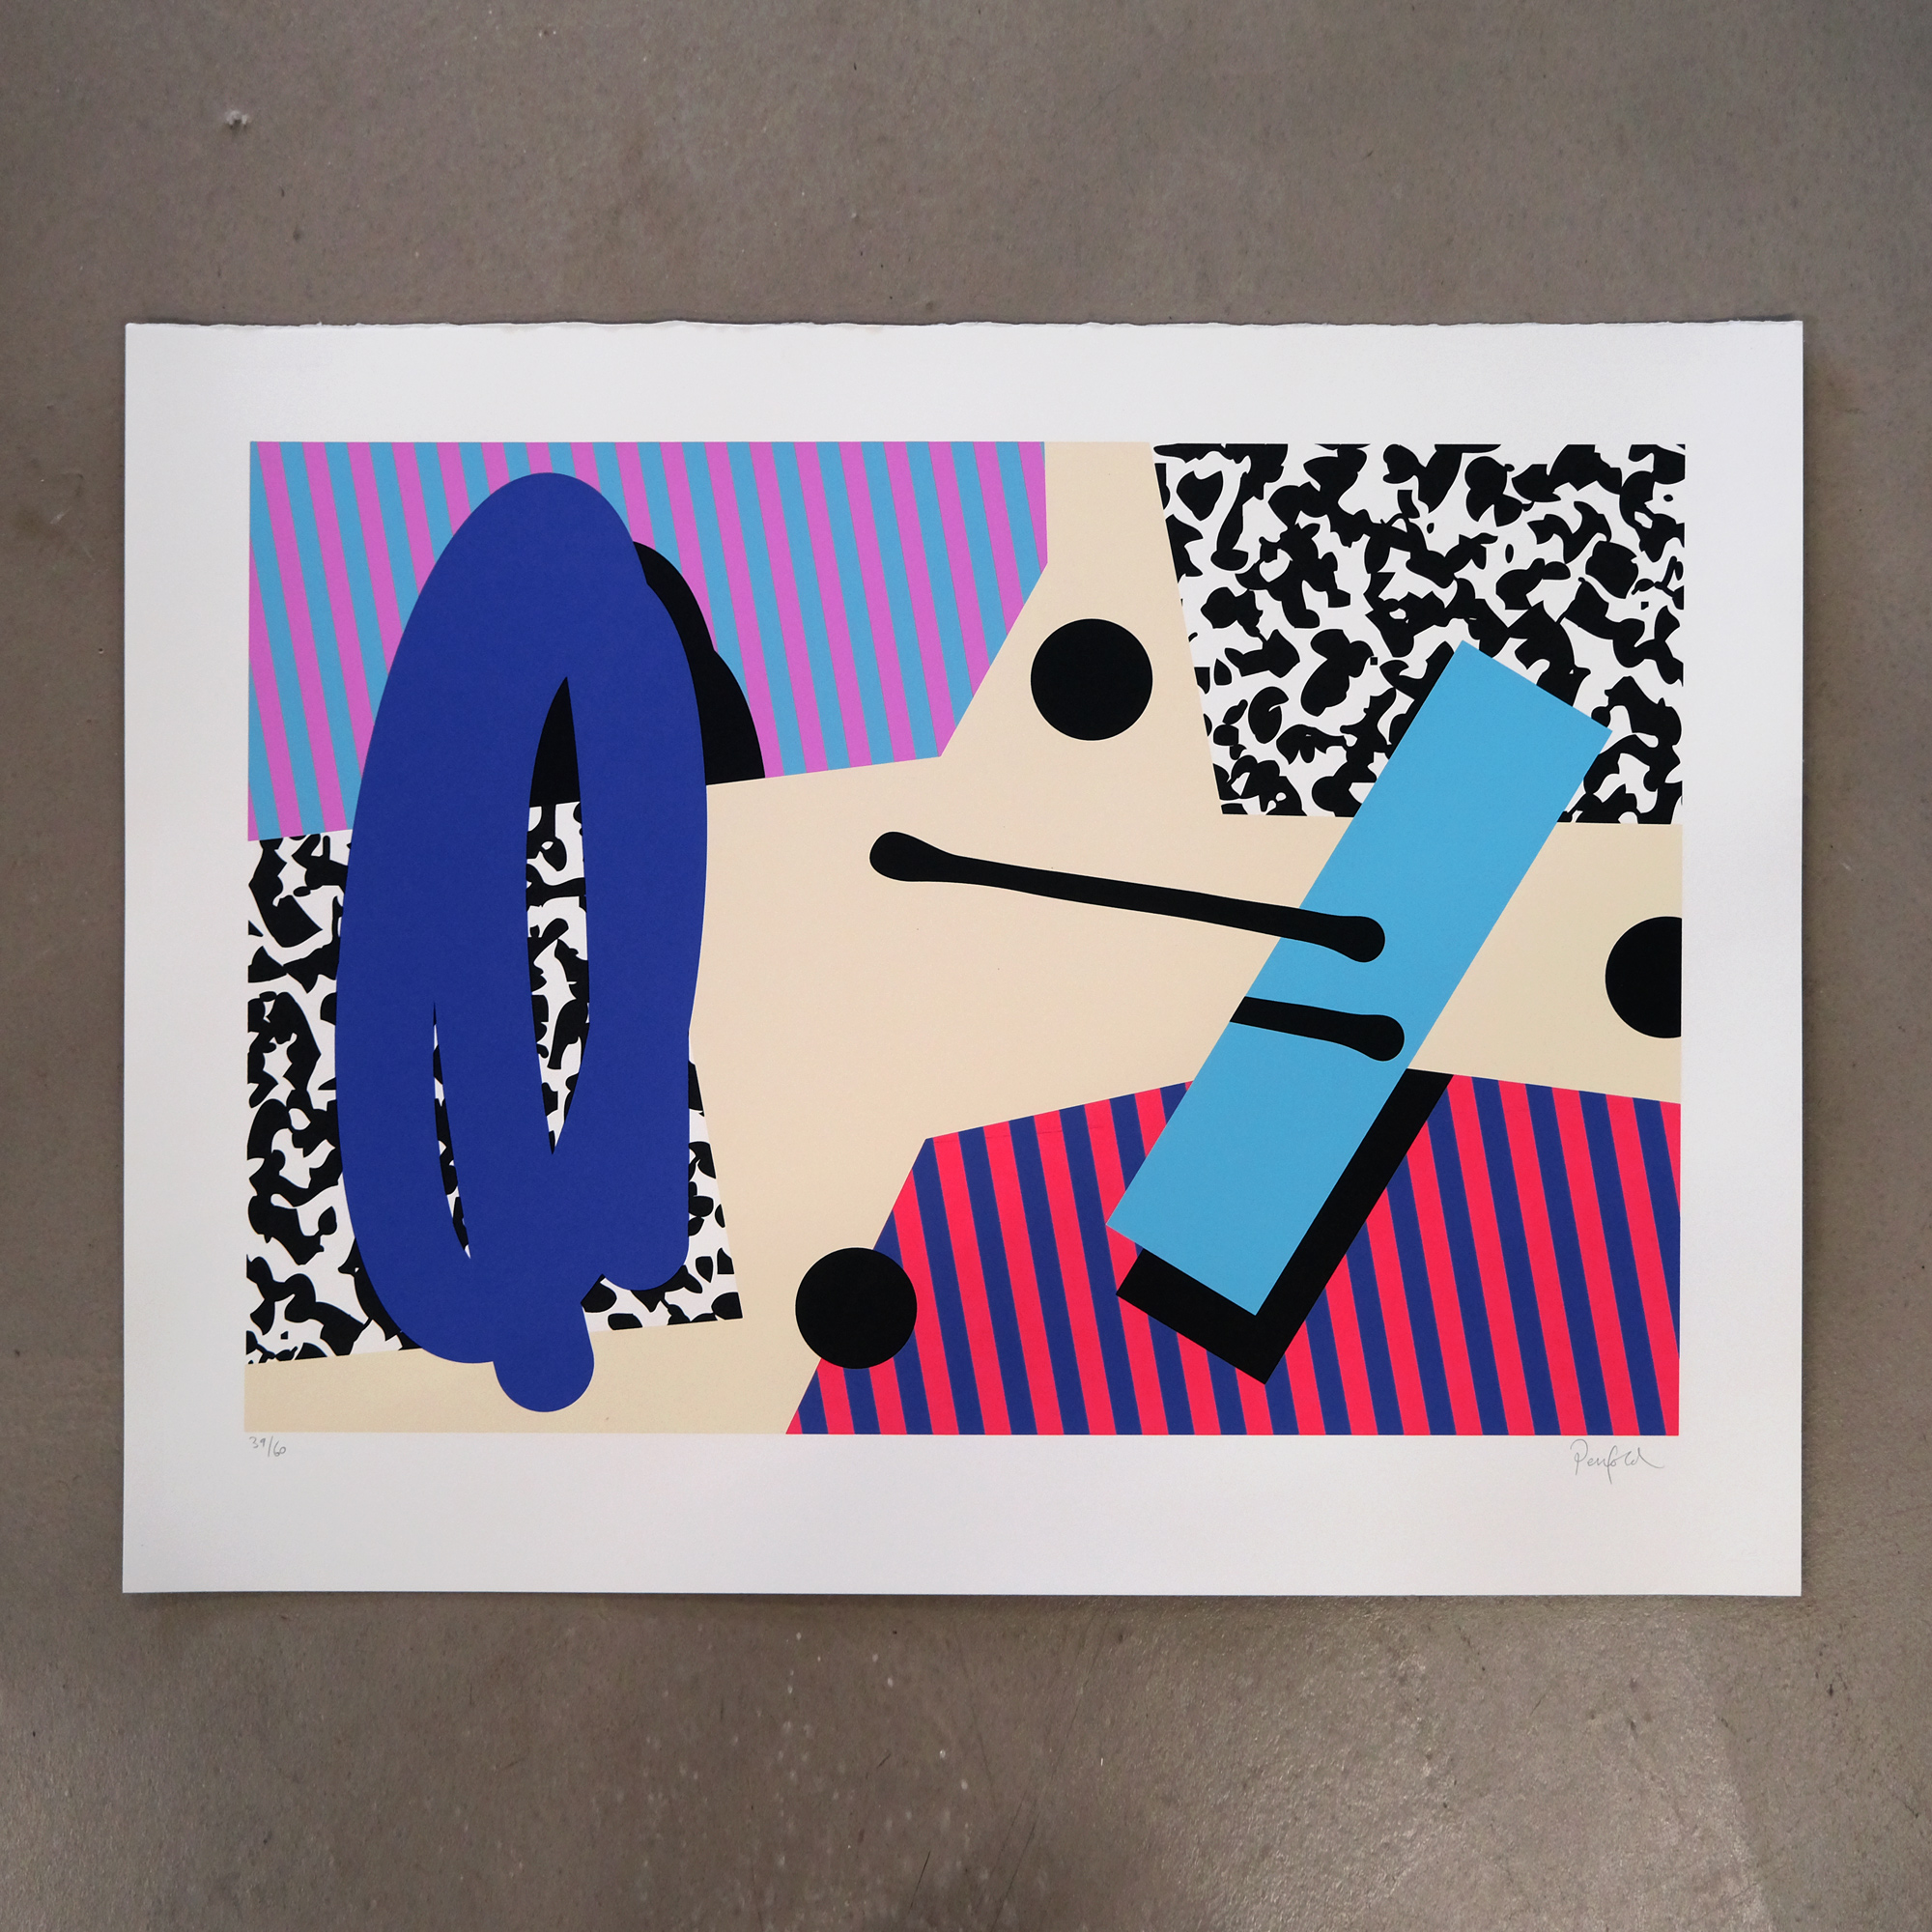 PENFOLD SUSPENDED ELEMENTS SCREEN PRINT